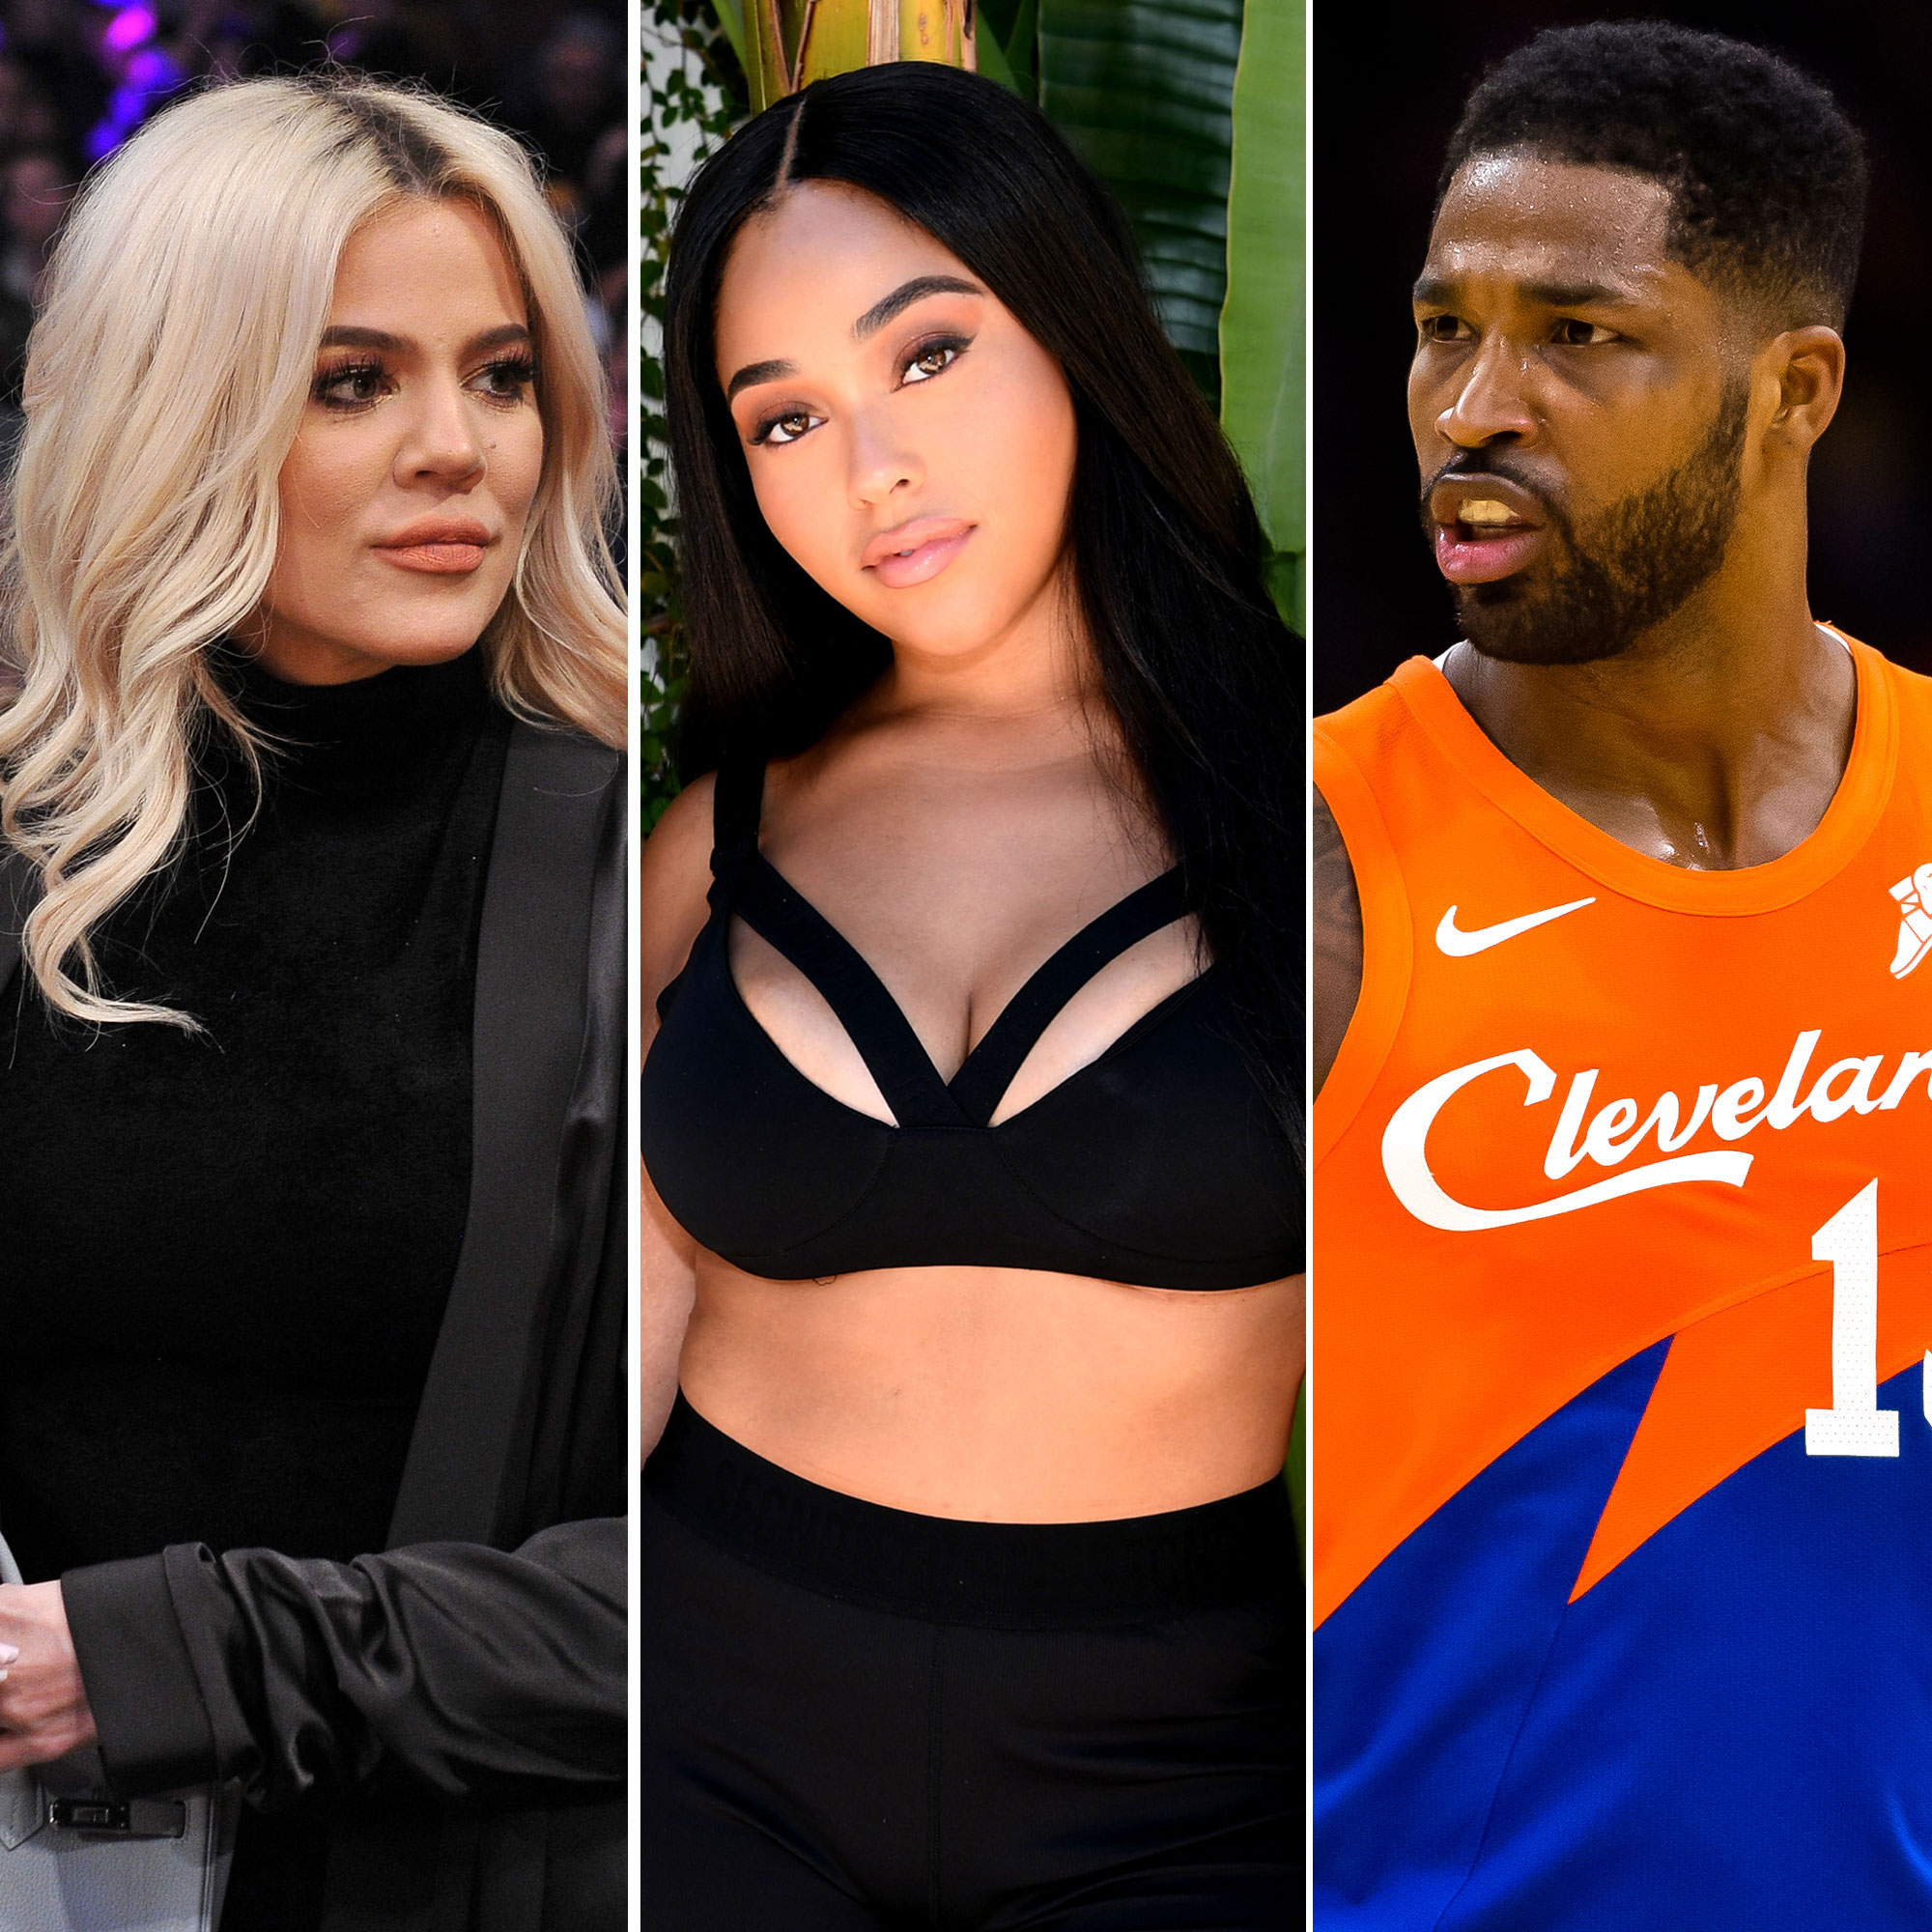 """Khloe Kardashian Jordyn Woods Tristan Thompson Cheating Scandal Times - While Khloé initially called Woods the reason her """"family broke up,"""" she backtracked in a series of tweets on March 2, 2019. """"This has been an awful week & I know everyone is sick of hearing about it all (as am I). I'm a rollercoaster of emotions & have said things I shouldn't have,"""" she tweeted."""